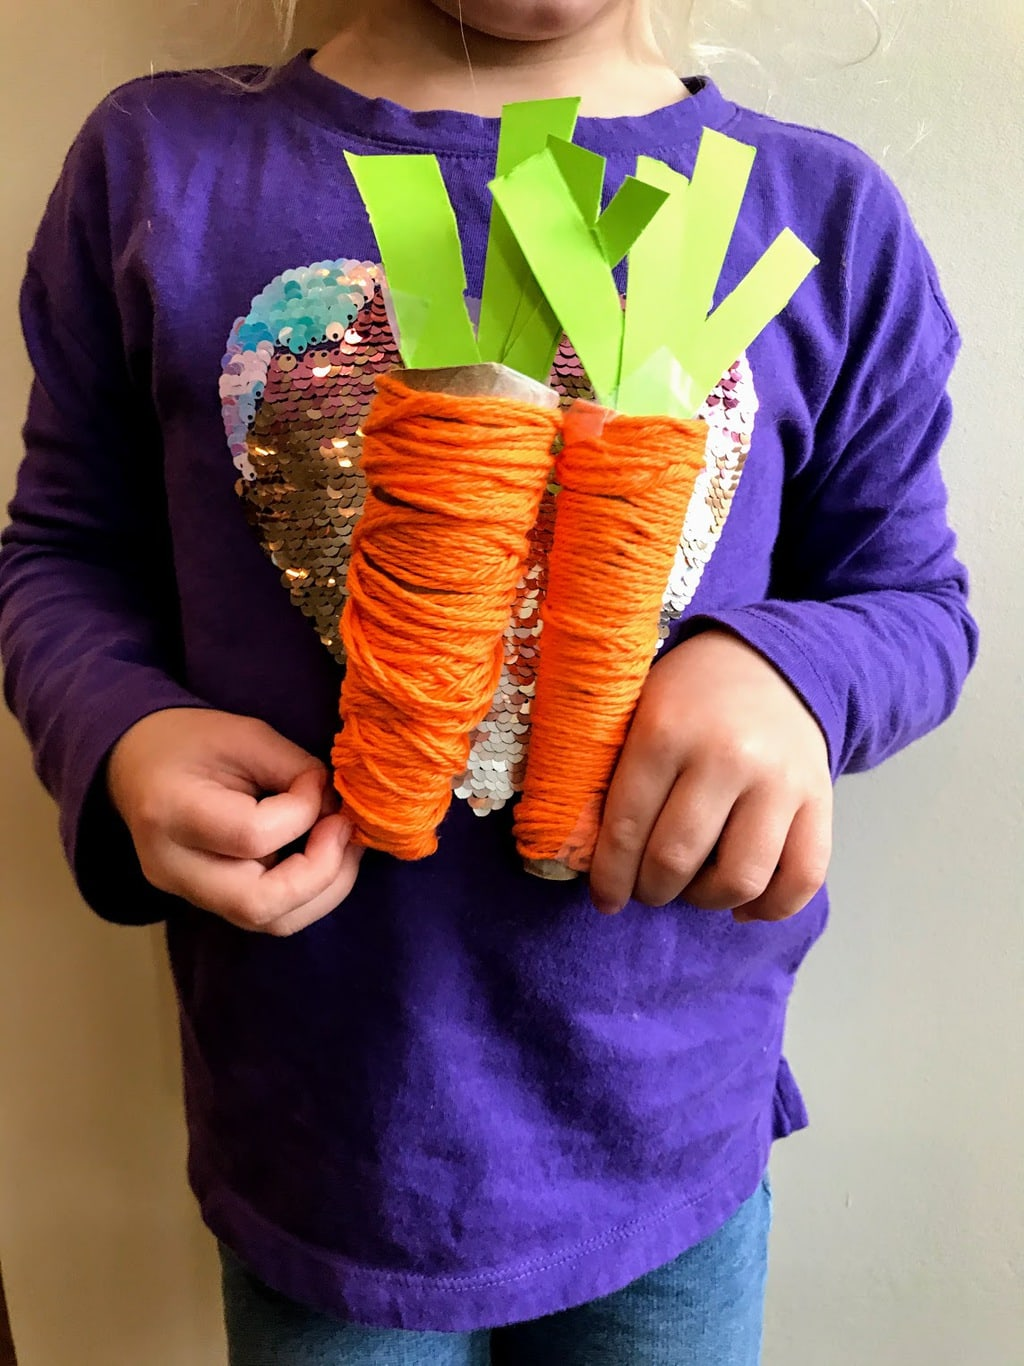 child holding two play food carrots made from orange yarn